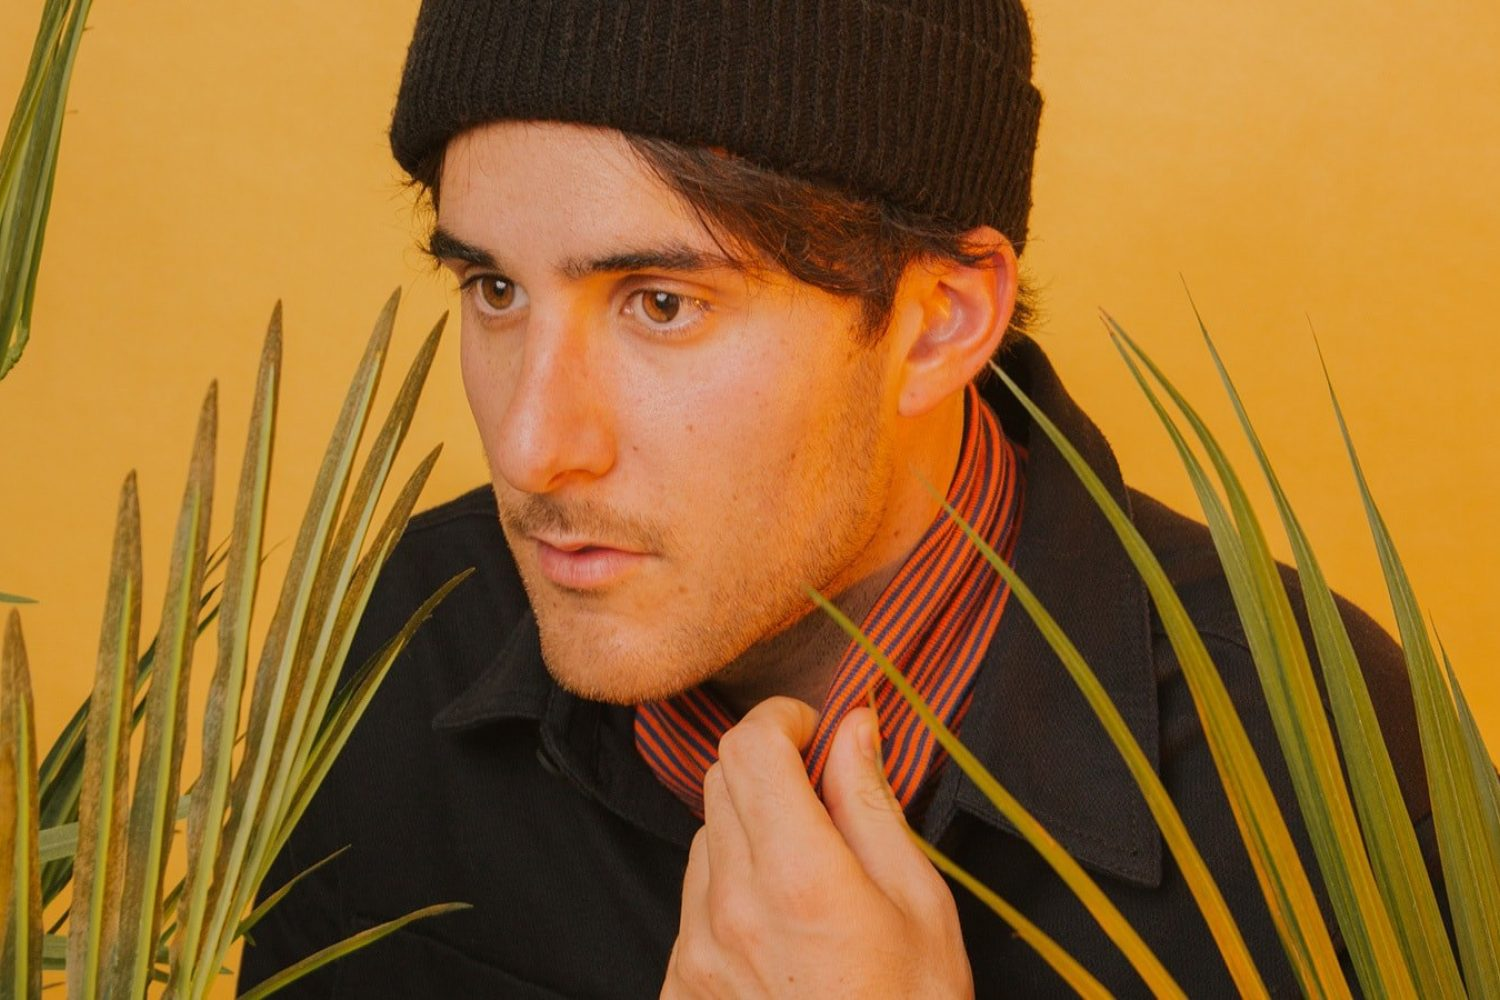 Check out HalfNoise's latest new track, 'She Said'